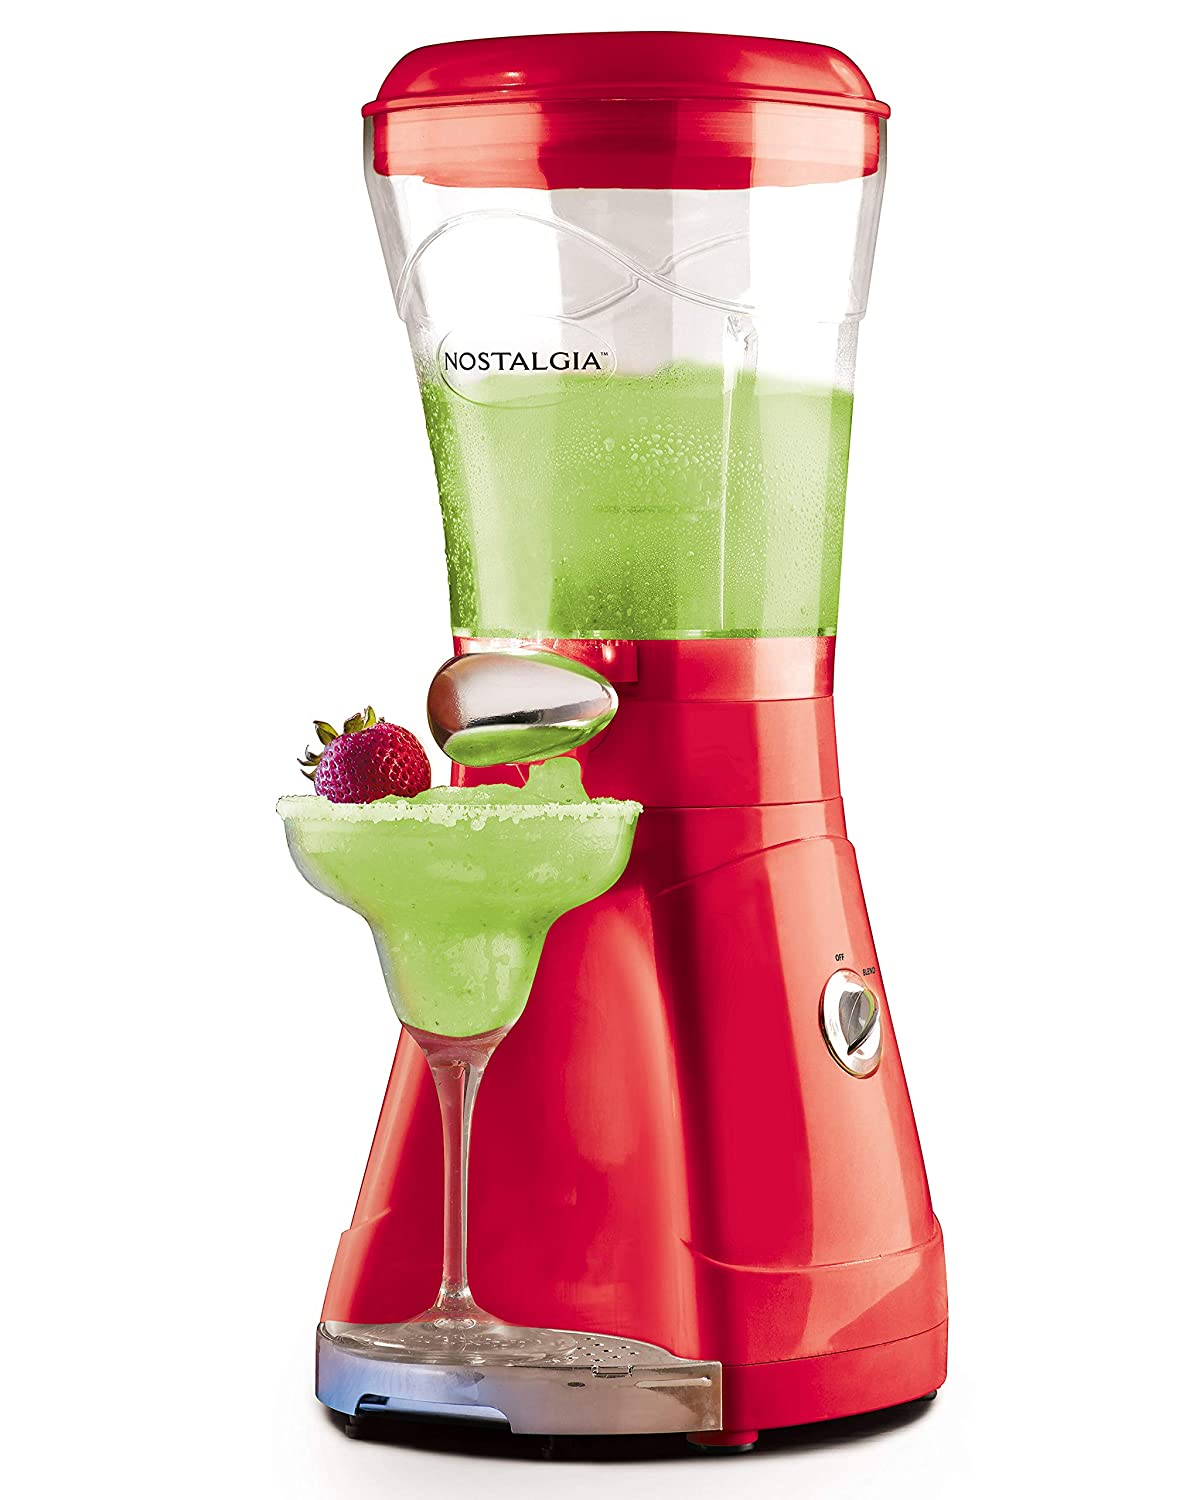 Nostalgia MSB64 Margarita and Slush Maker 64-Ounce Red